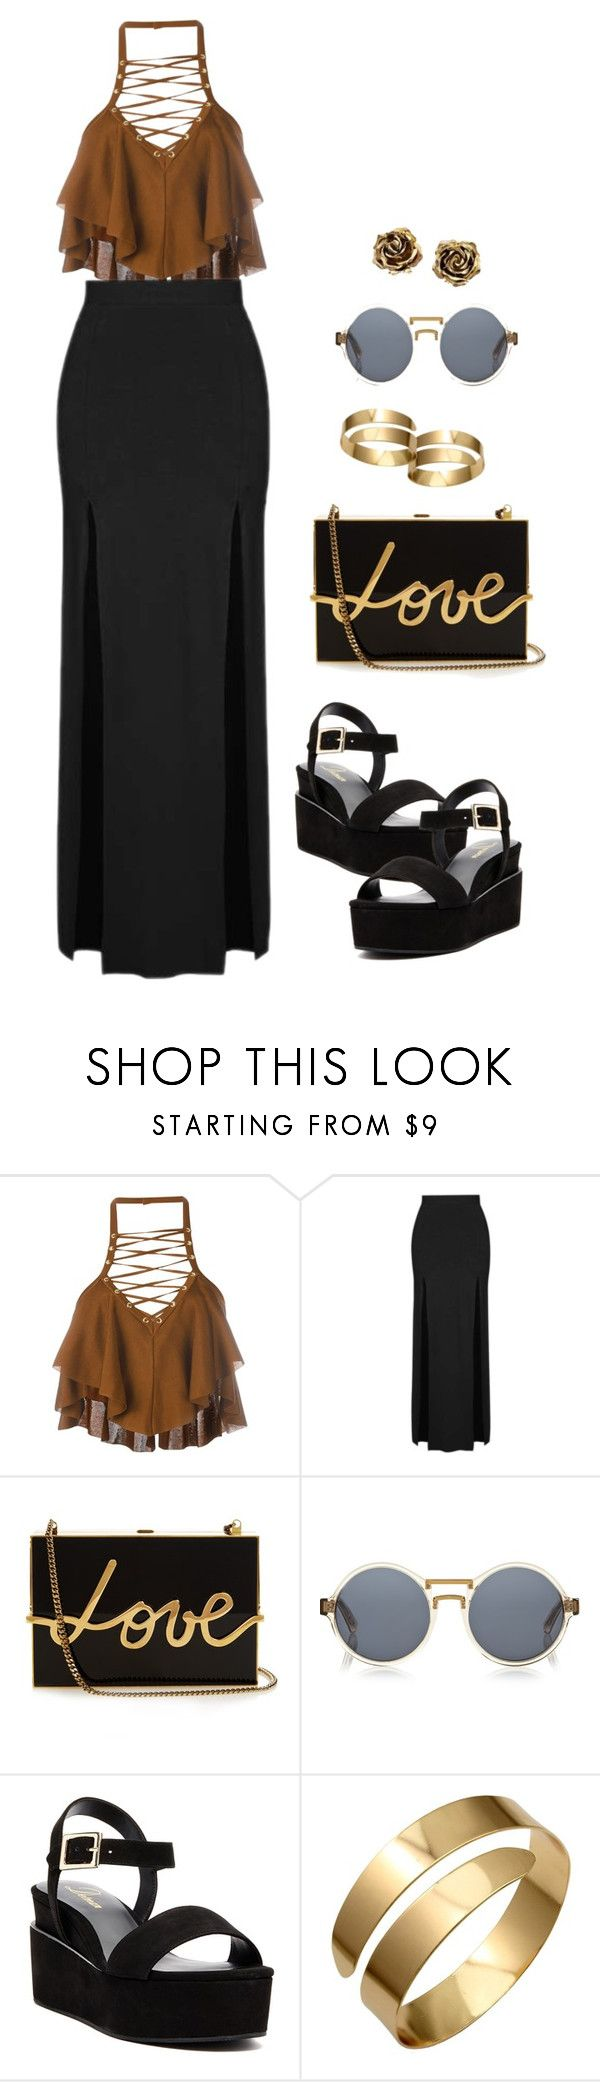 """""""💋"""" by uniquely-flawed ❤ liked on Polyvore featuring Balmain, Topshop, Lanvin, Finlay & Co., Delman, Q&Q and Tiffany & Co."""